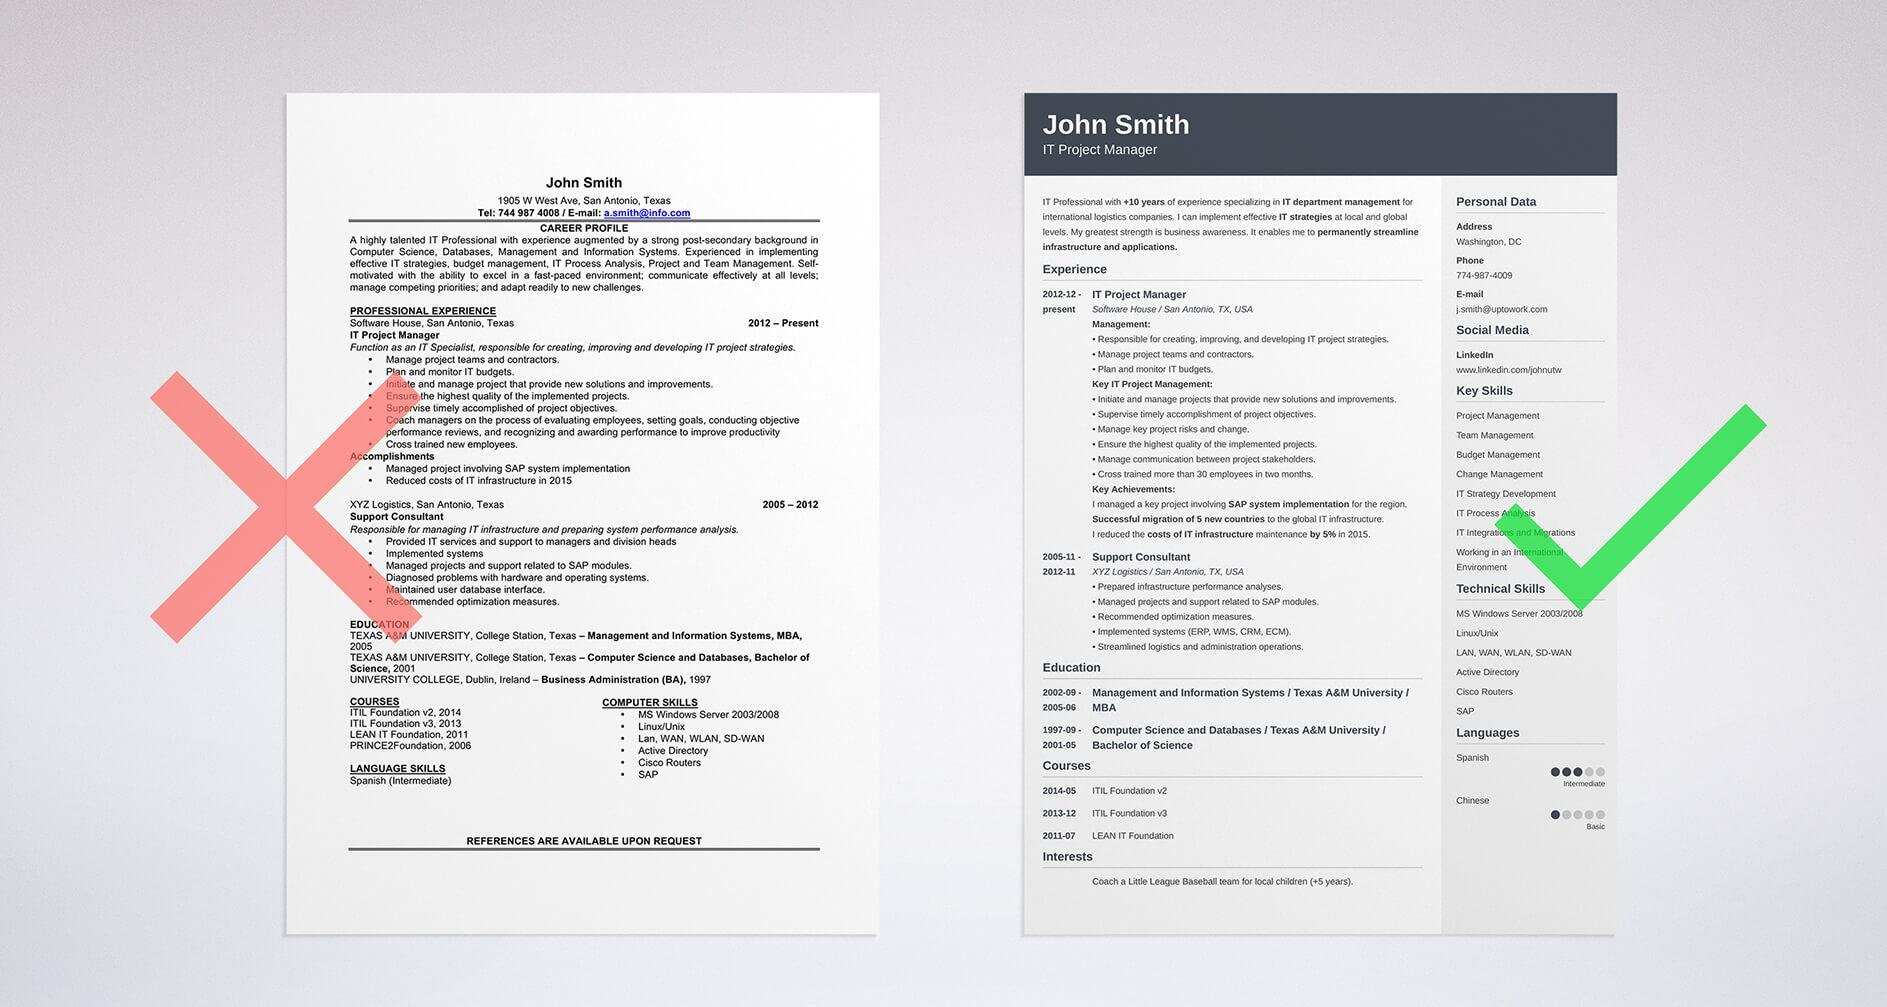 emailing resume job application email samples content for sending to get more jobs rental Resume Content For Sending Resume